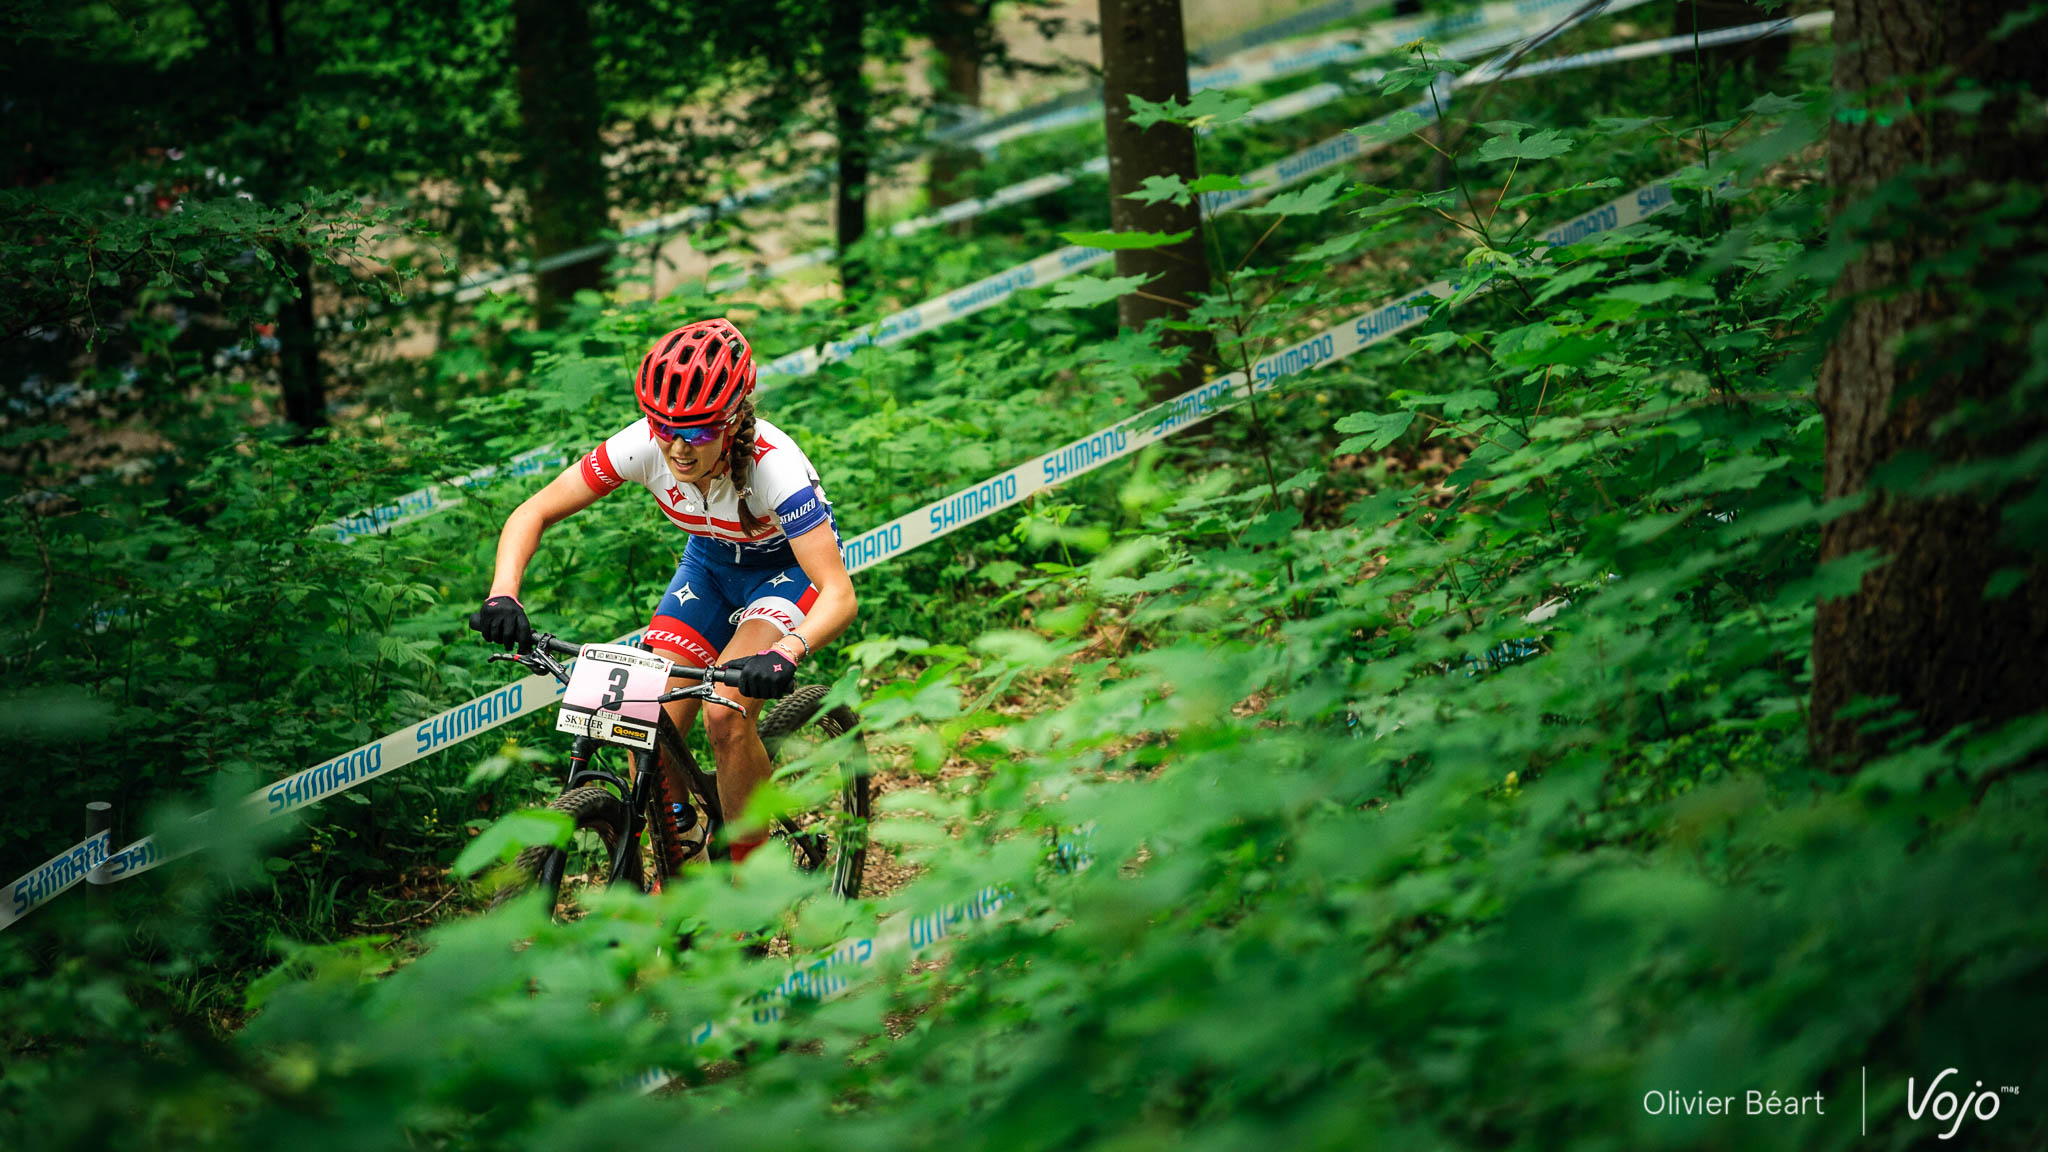 World_Cup_Albstadt_2015_Women_U23_Rissveds_Copyright_OBeart_VojoMag-111